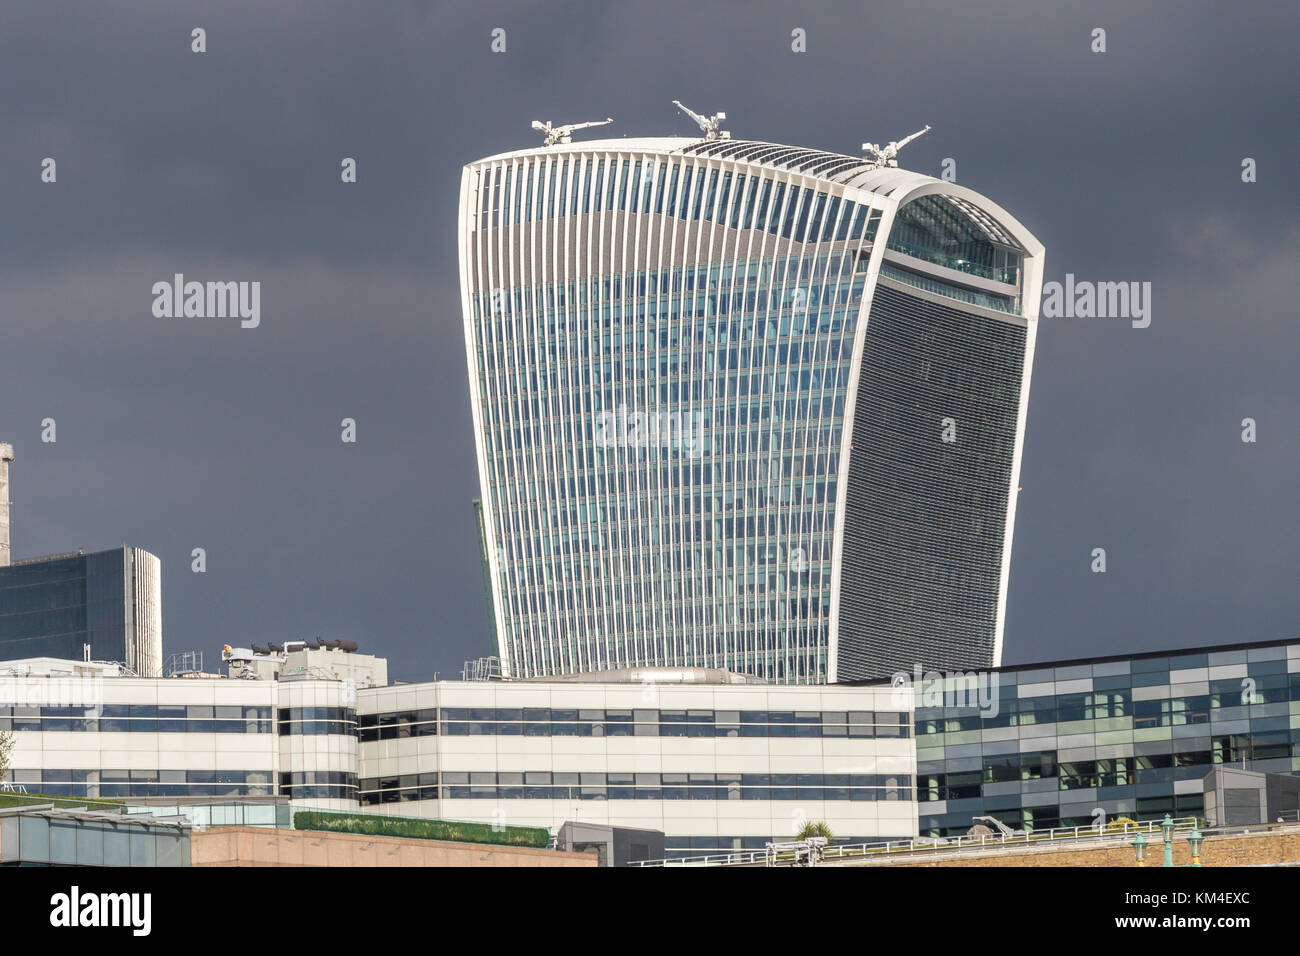 20 Fenchurch St , commonly know as The Walkie Talkie Building in The City Of London , United kingdom - Stock Image